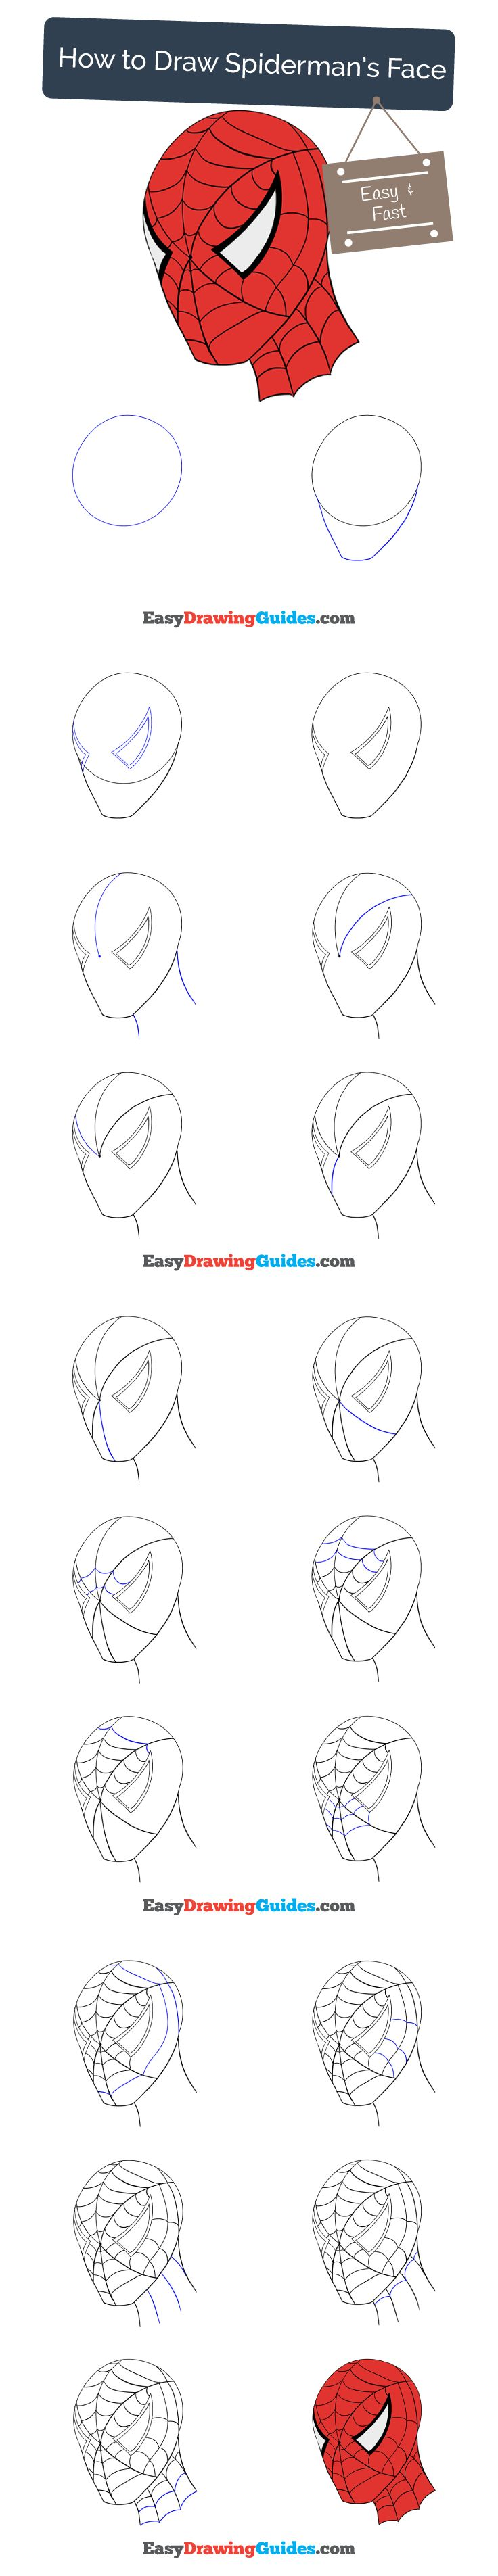 Learn How to Draw Spiderman's Face: Easy Step-by-Step Drawing Tutorial for Kids and Beginners. #spiderman #drawing. See the full tutorial at https://easydrawingguides.com/draw-spidermans-face/